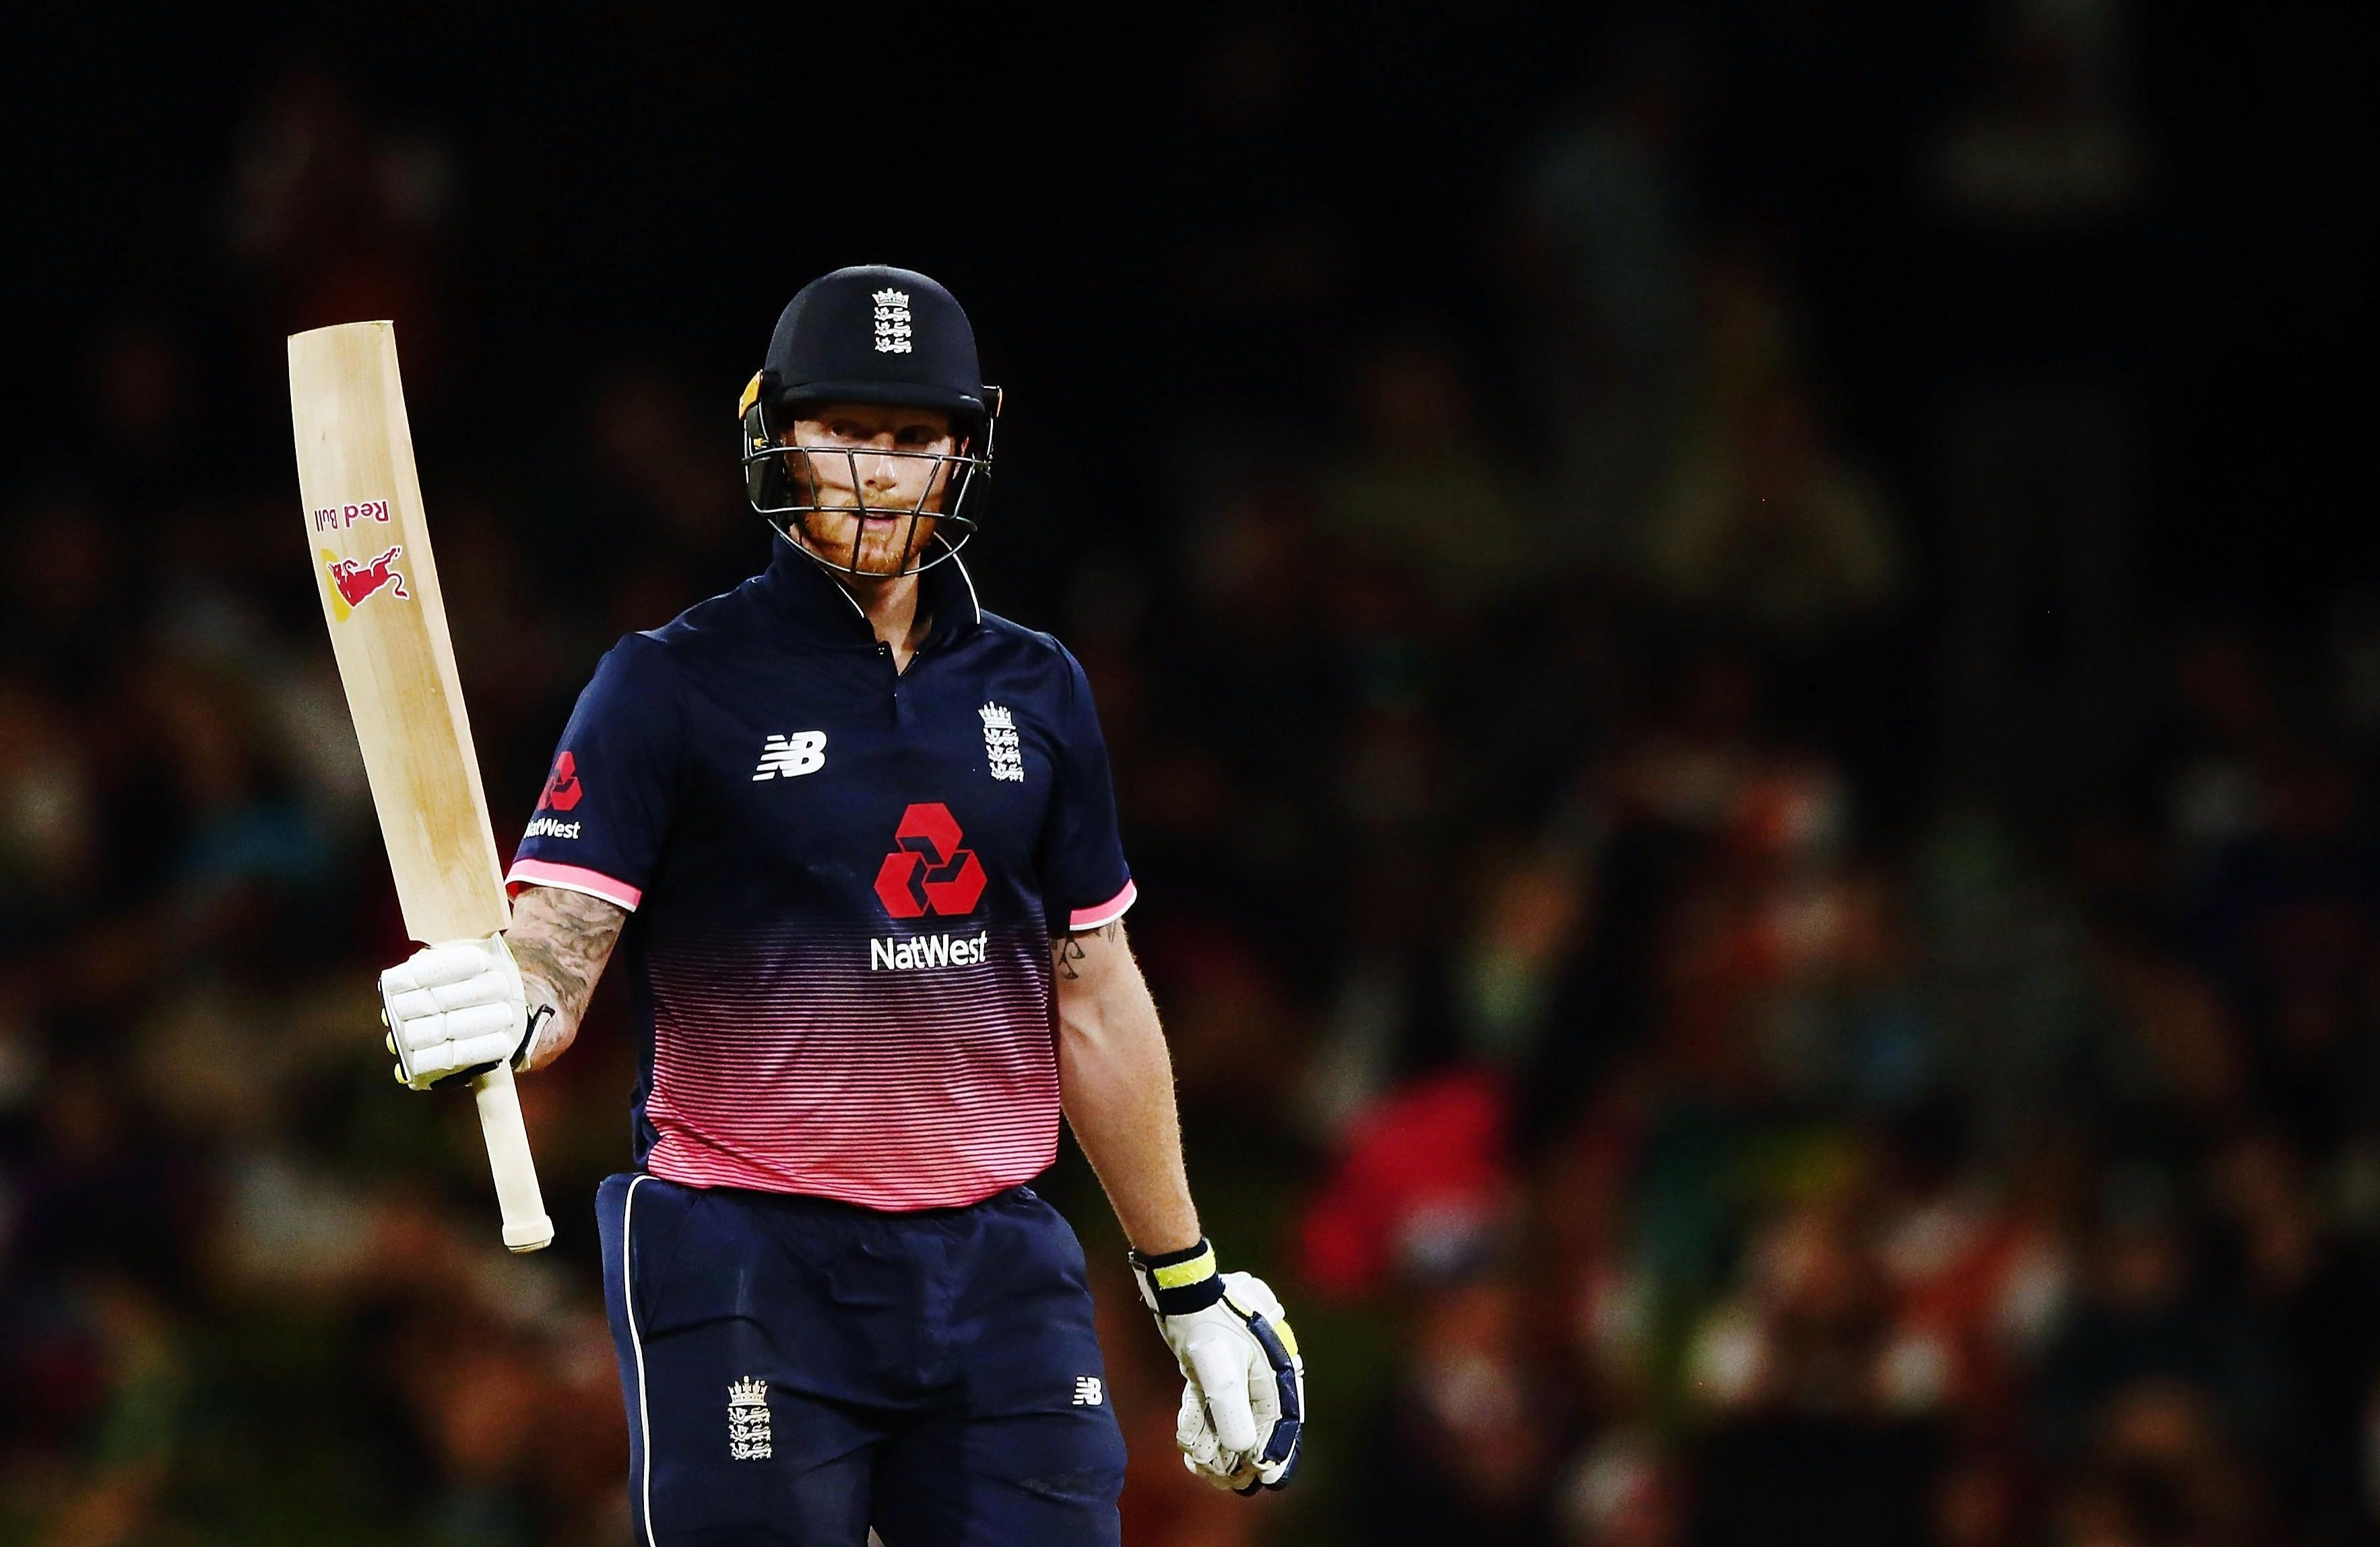 Ben Stokes was superb with bat, ball and in the field